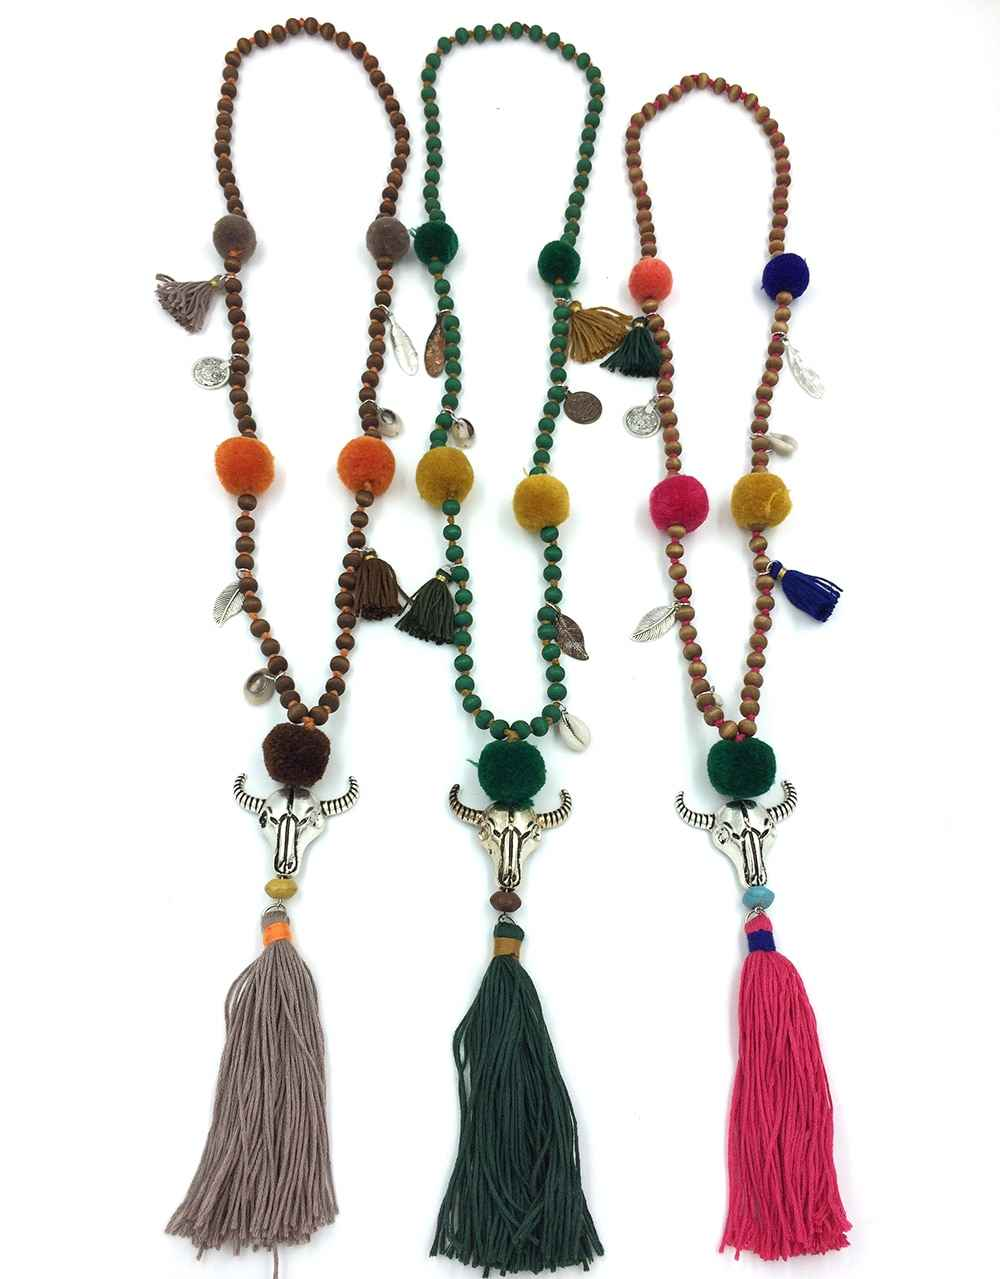 2017 Collares Collier Maxi Necklace Boho For Buffalo Head Skull Tauren Pendants Necklace Tassel Beades Chain Long Pompoms Charm